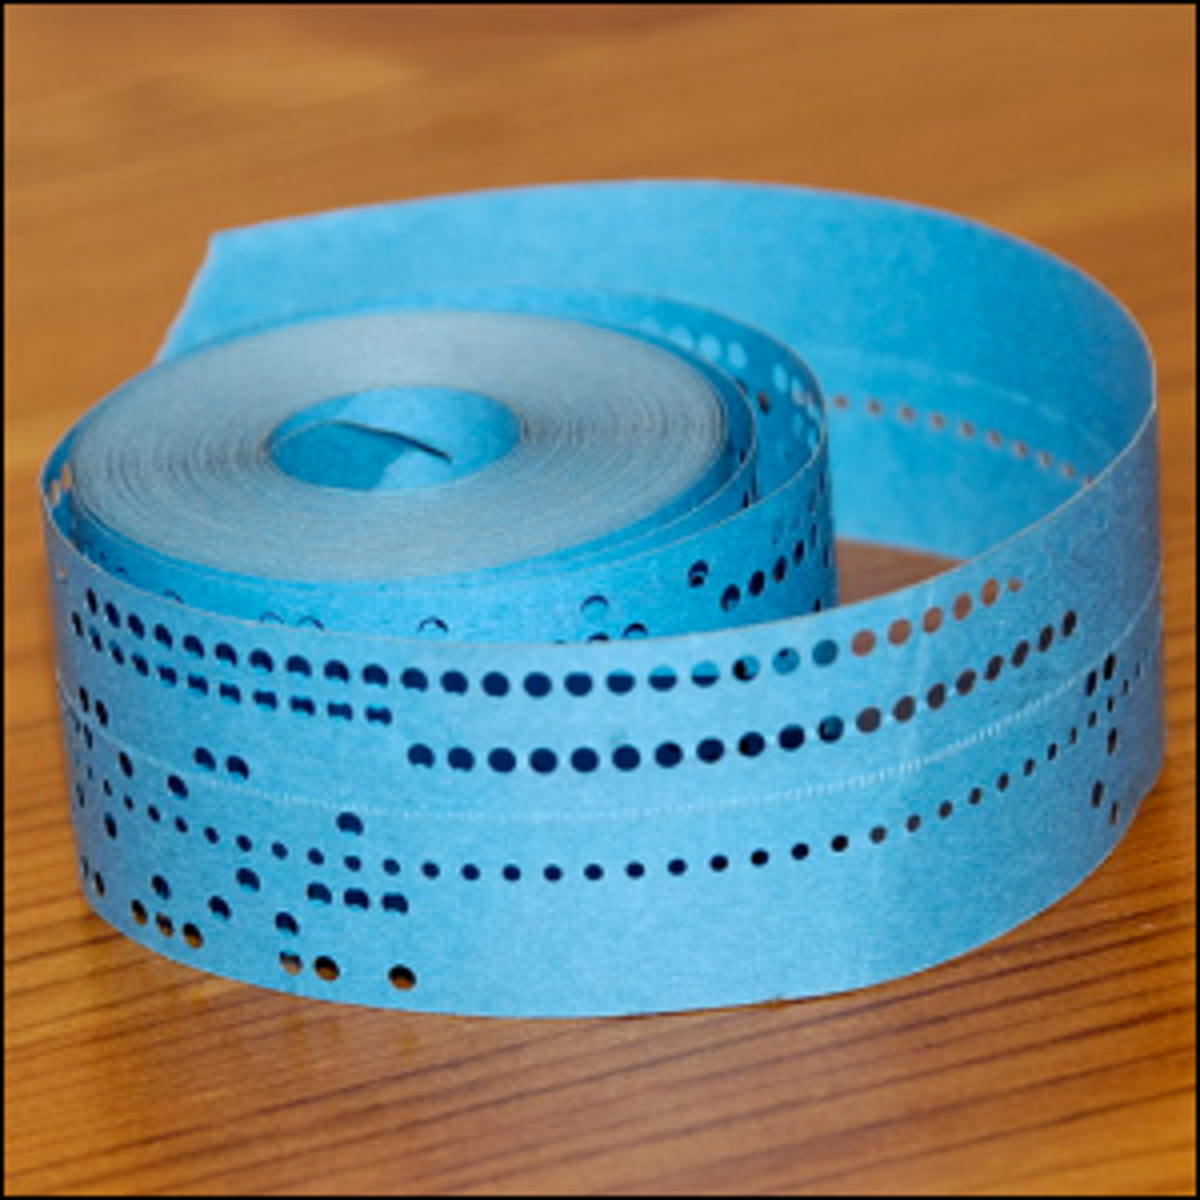 A roll of blue punched paper tape containing a computer program.